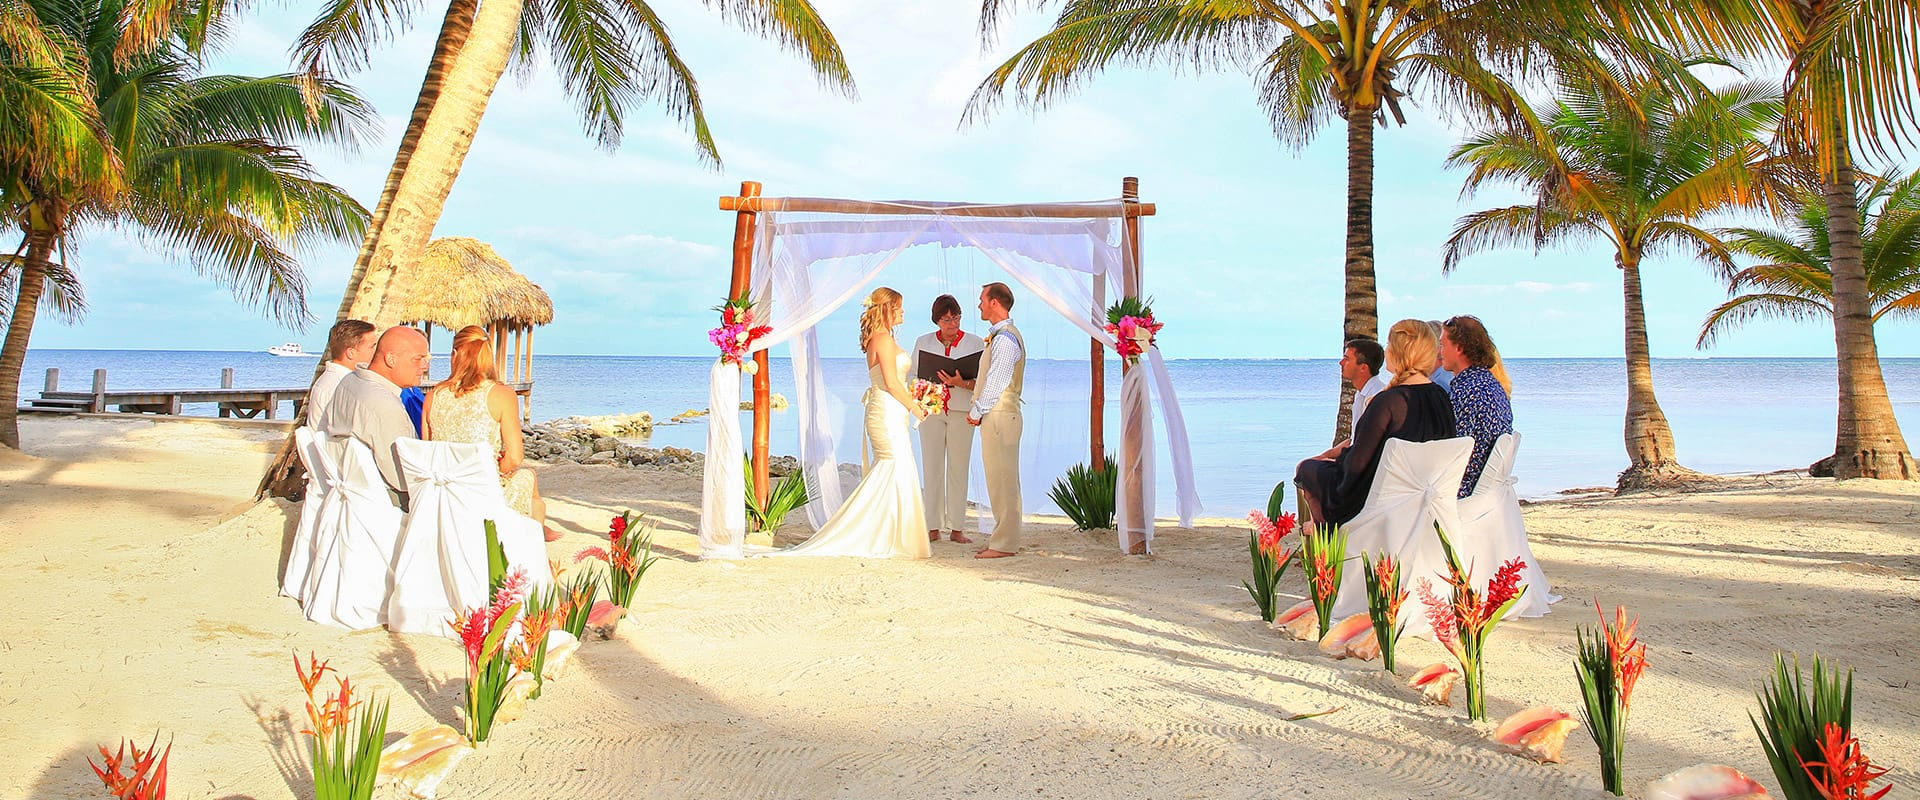 paradise-wedding-top-banner